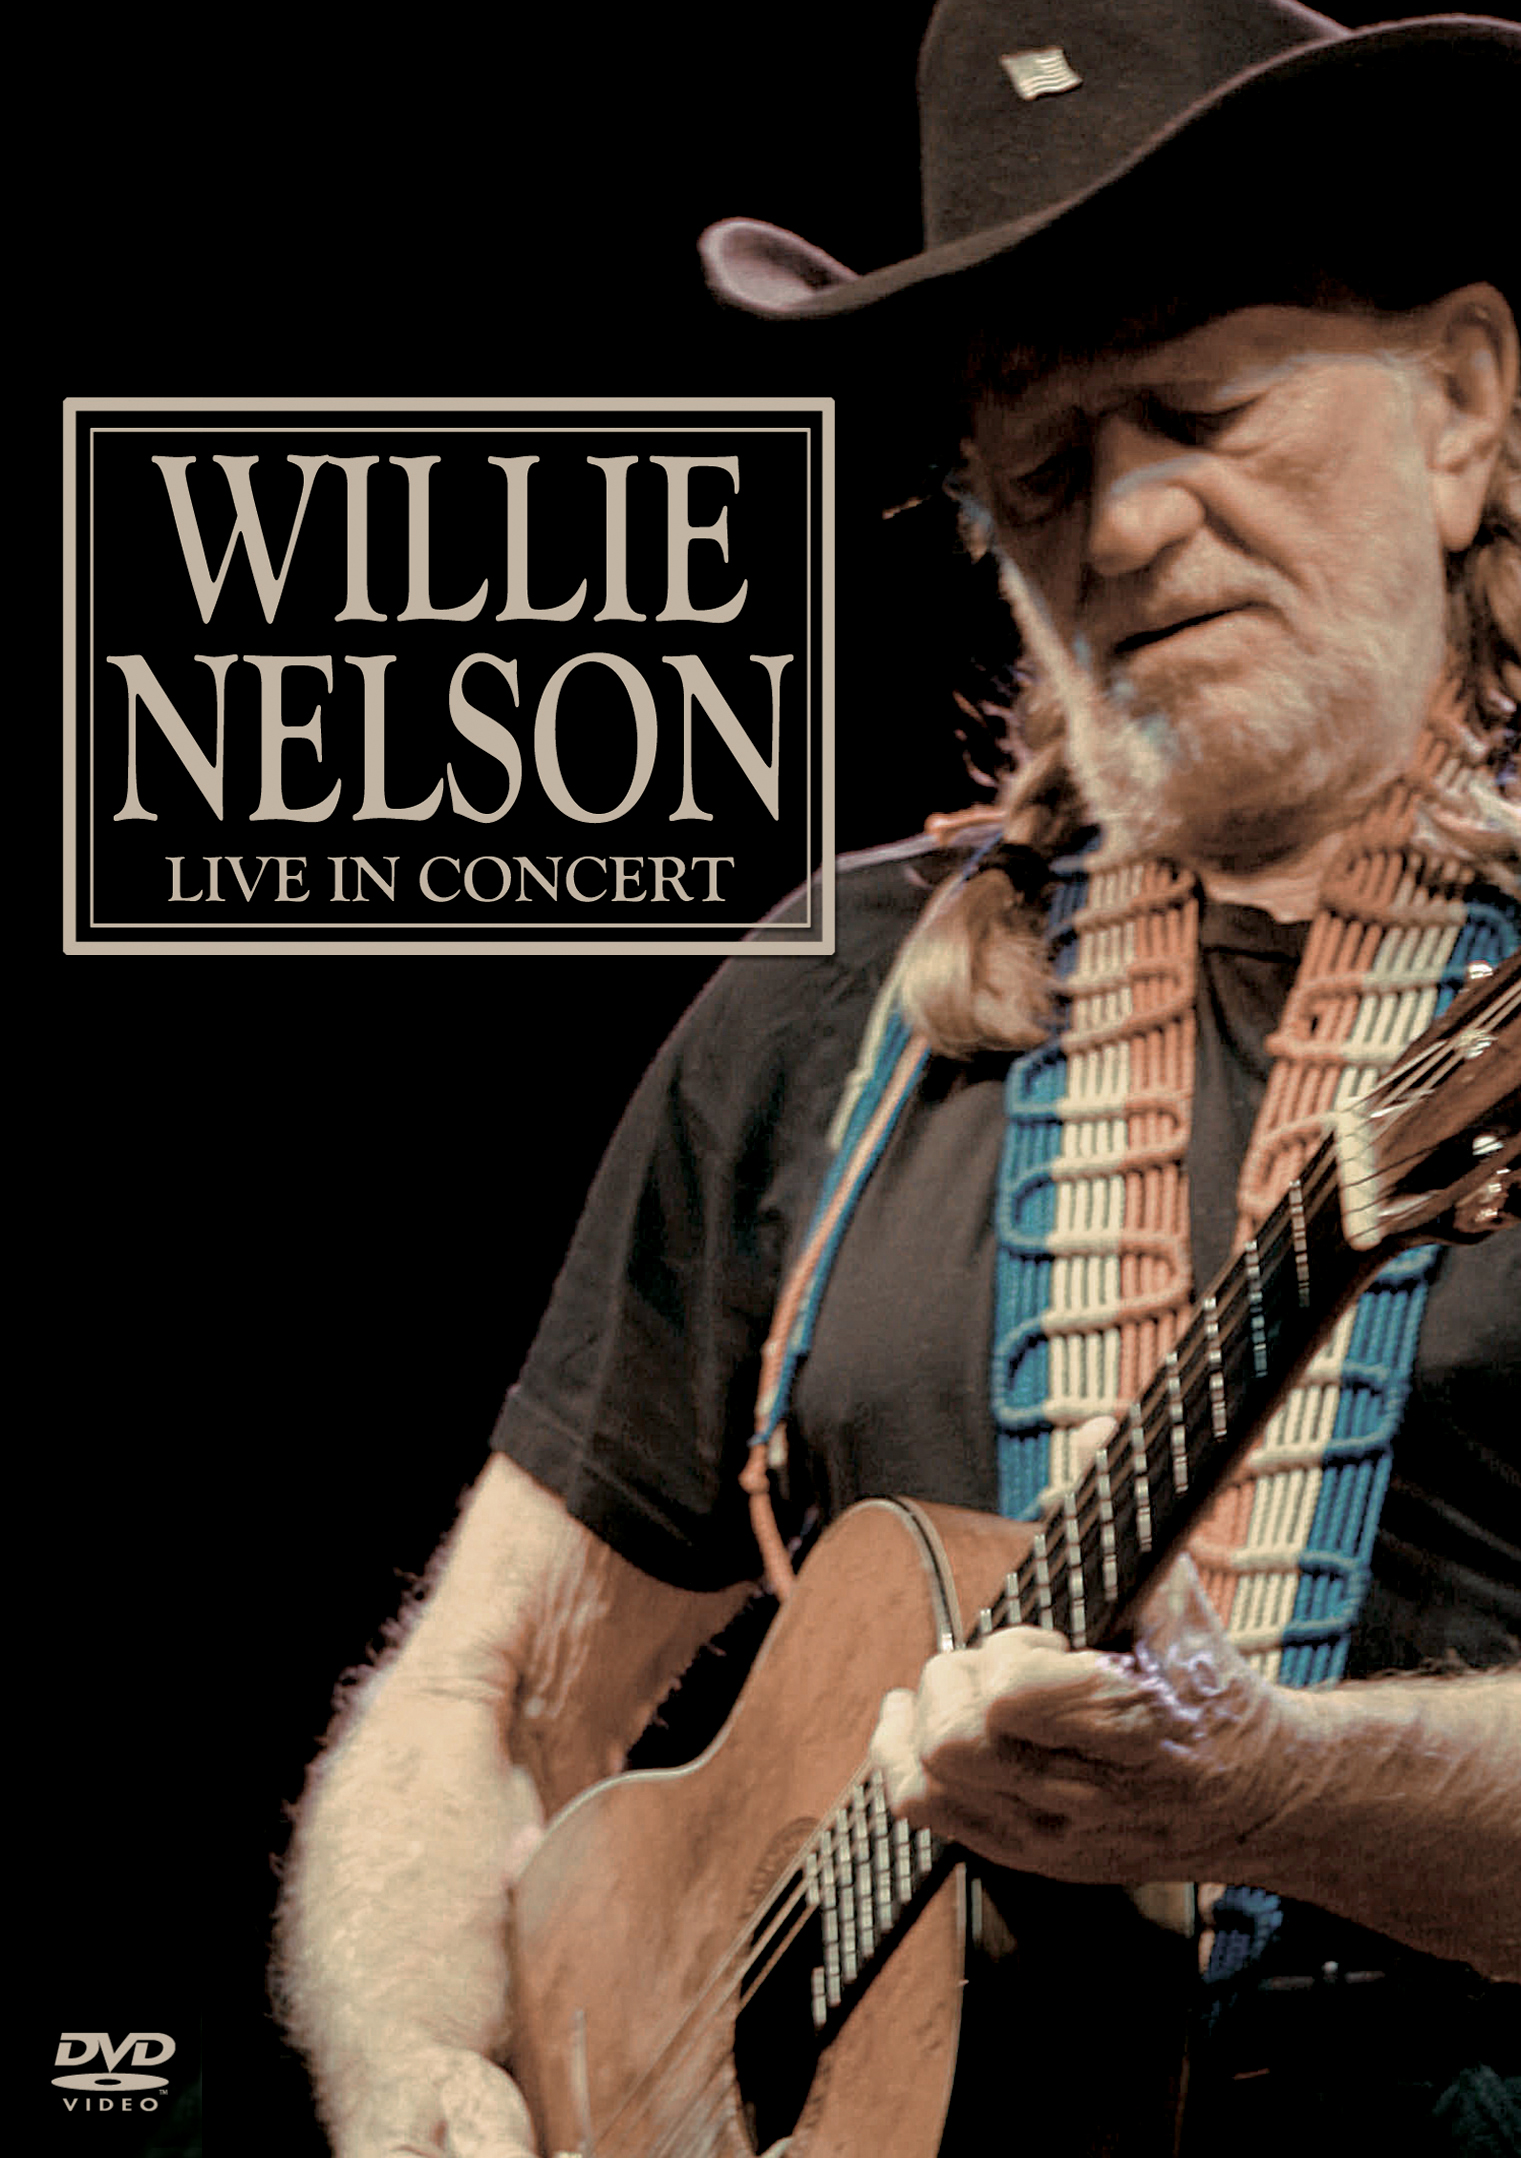 Willie Nelson: Live in Concert